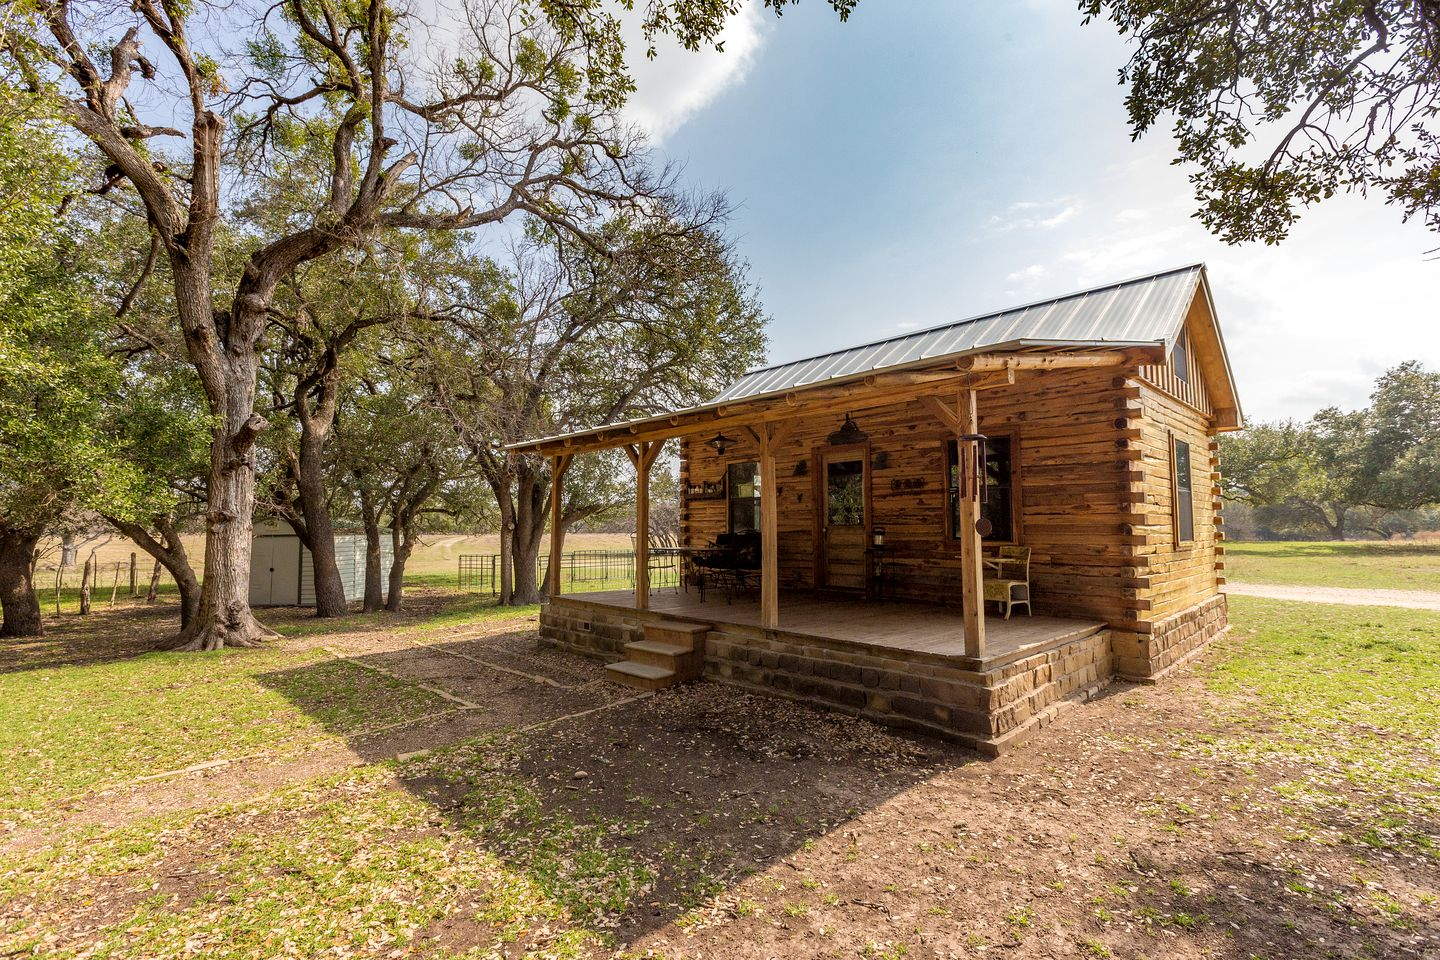 Texas Hill Country cabin rental.